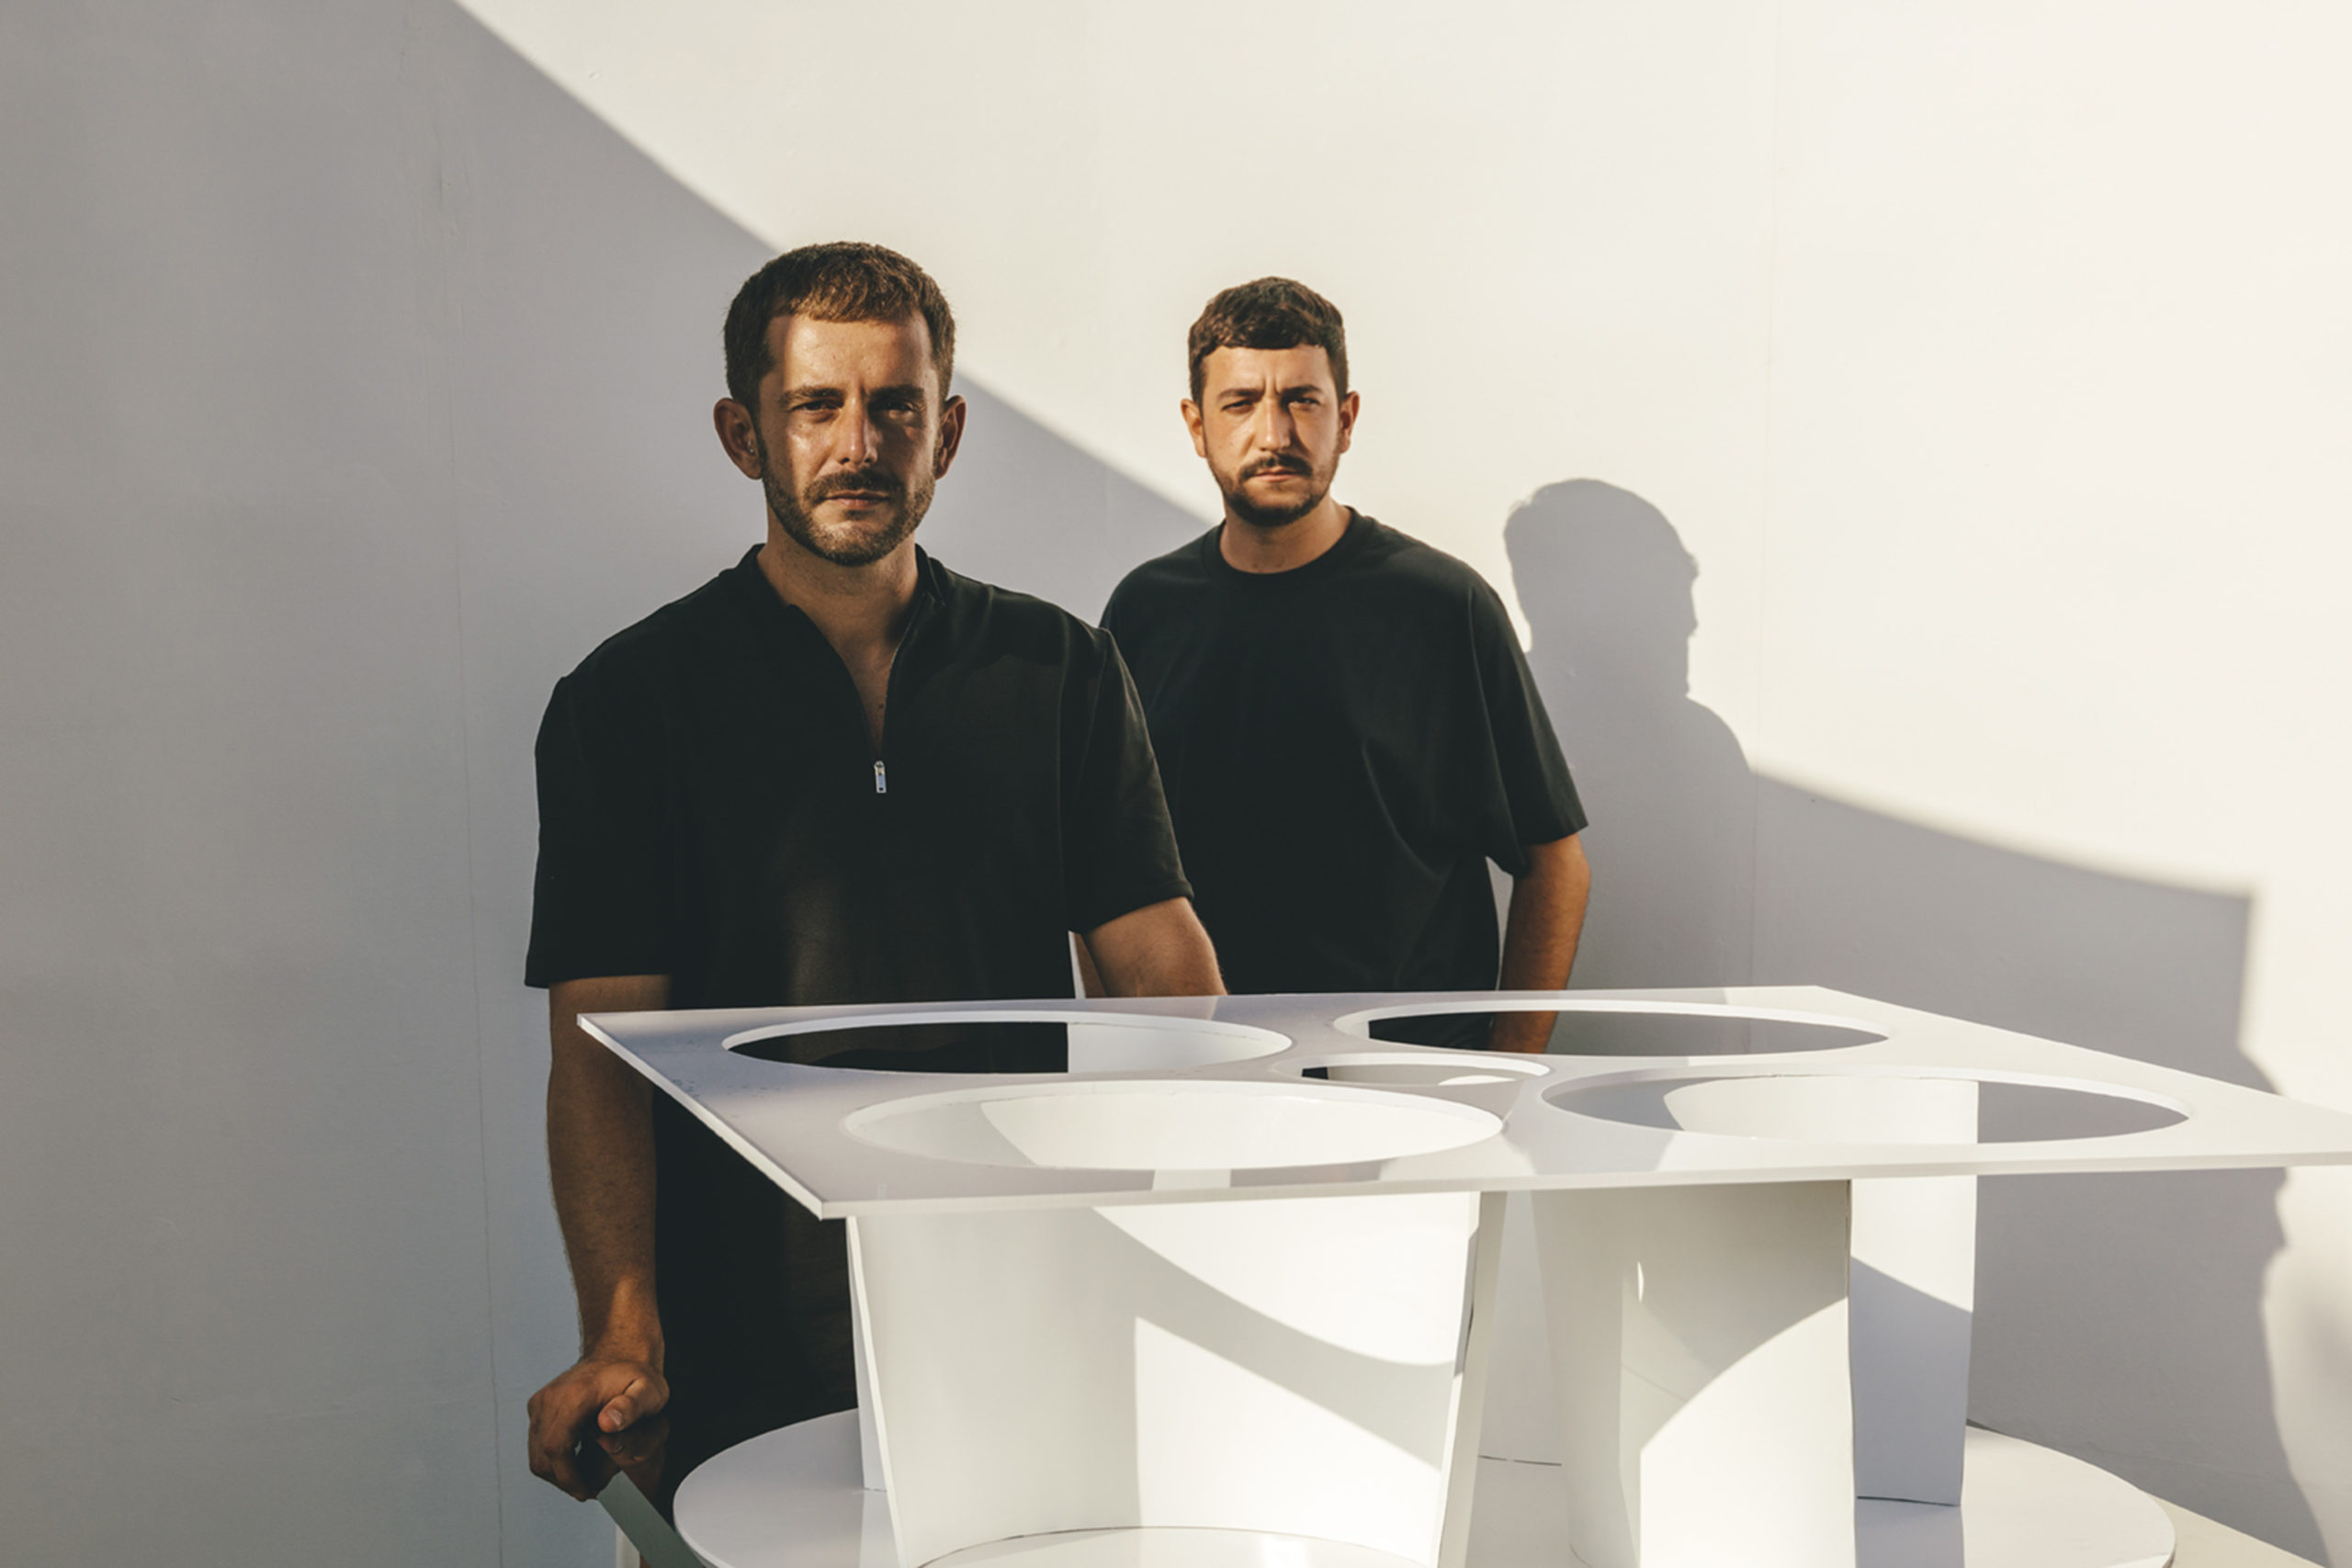 Two men, MUT Design, at a table